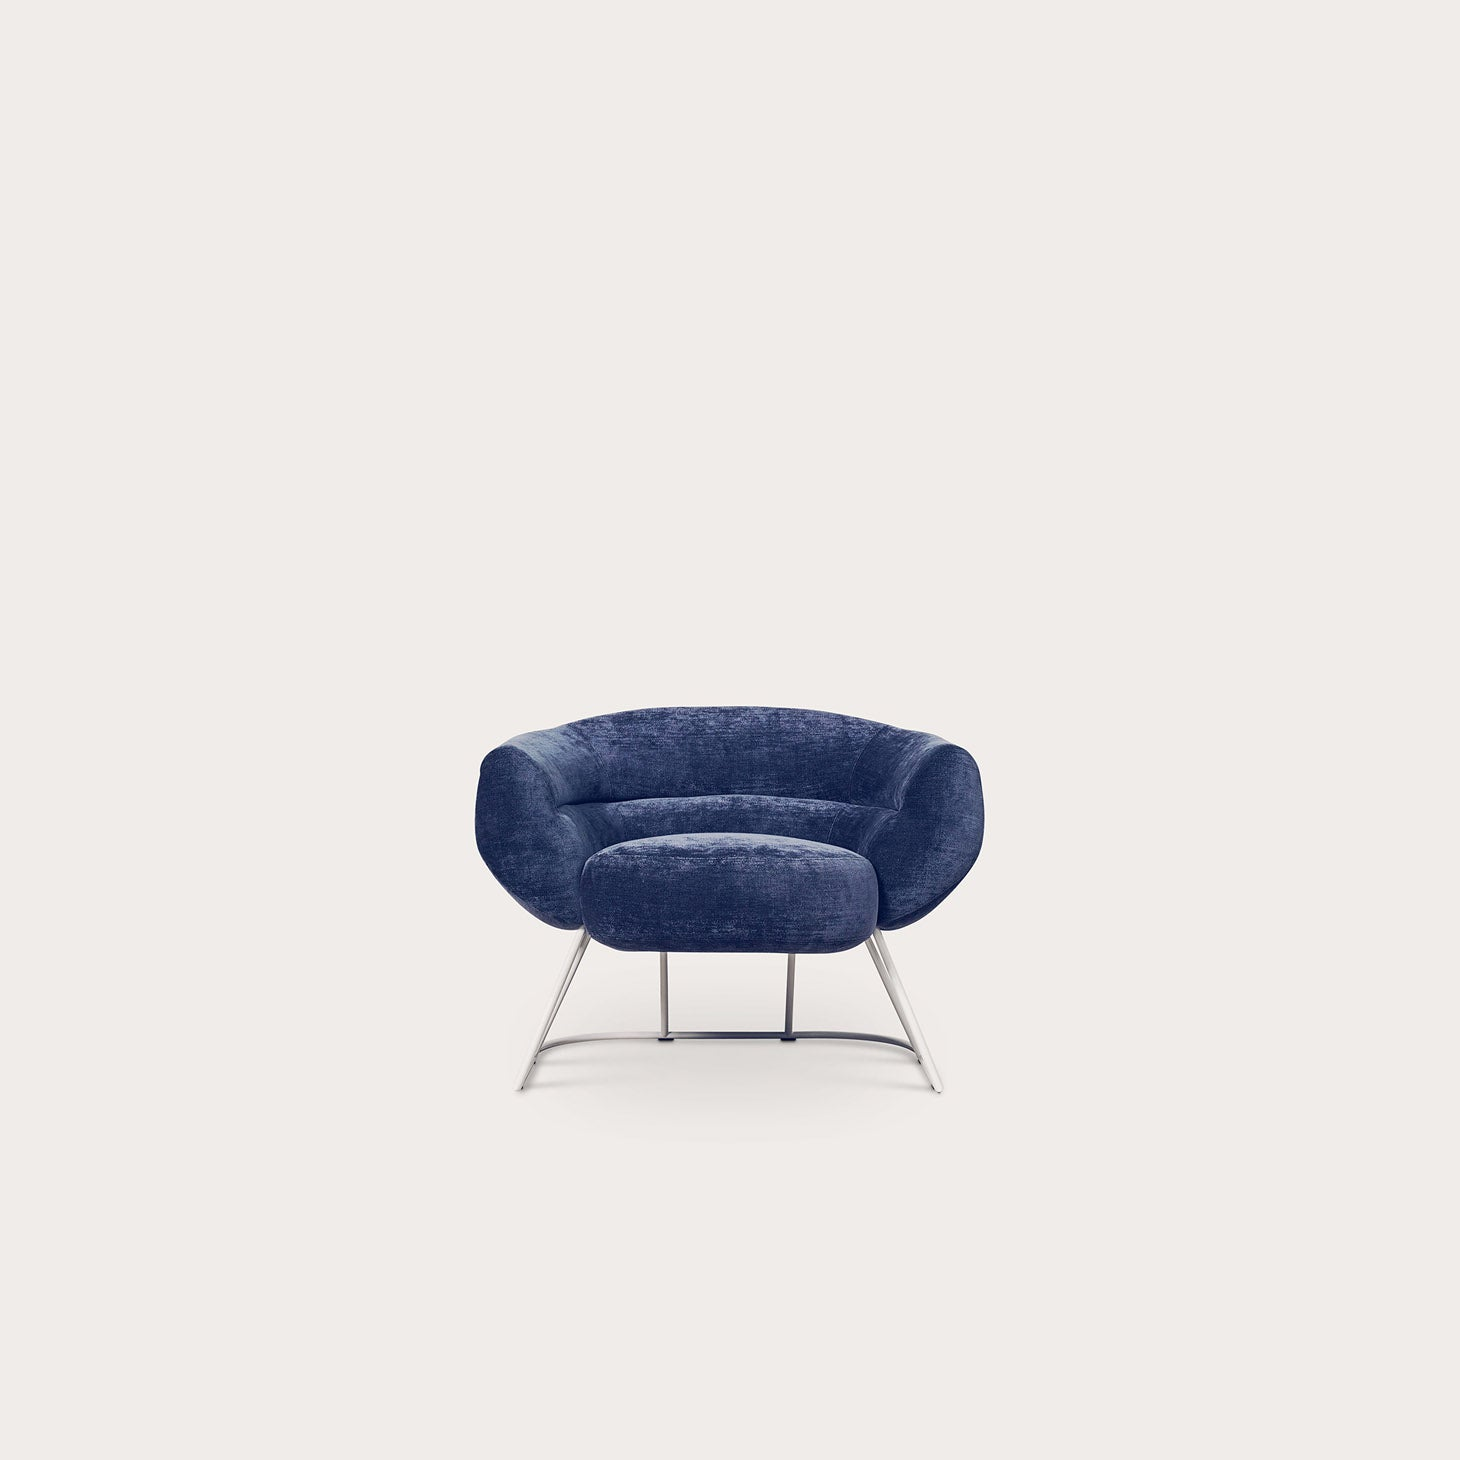 DJE Seating Christophe Delcourt Designer Furniture Sku: 008-240-10083